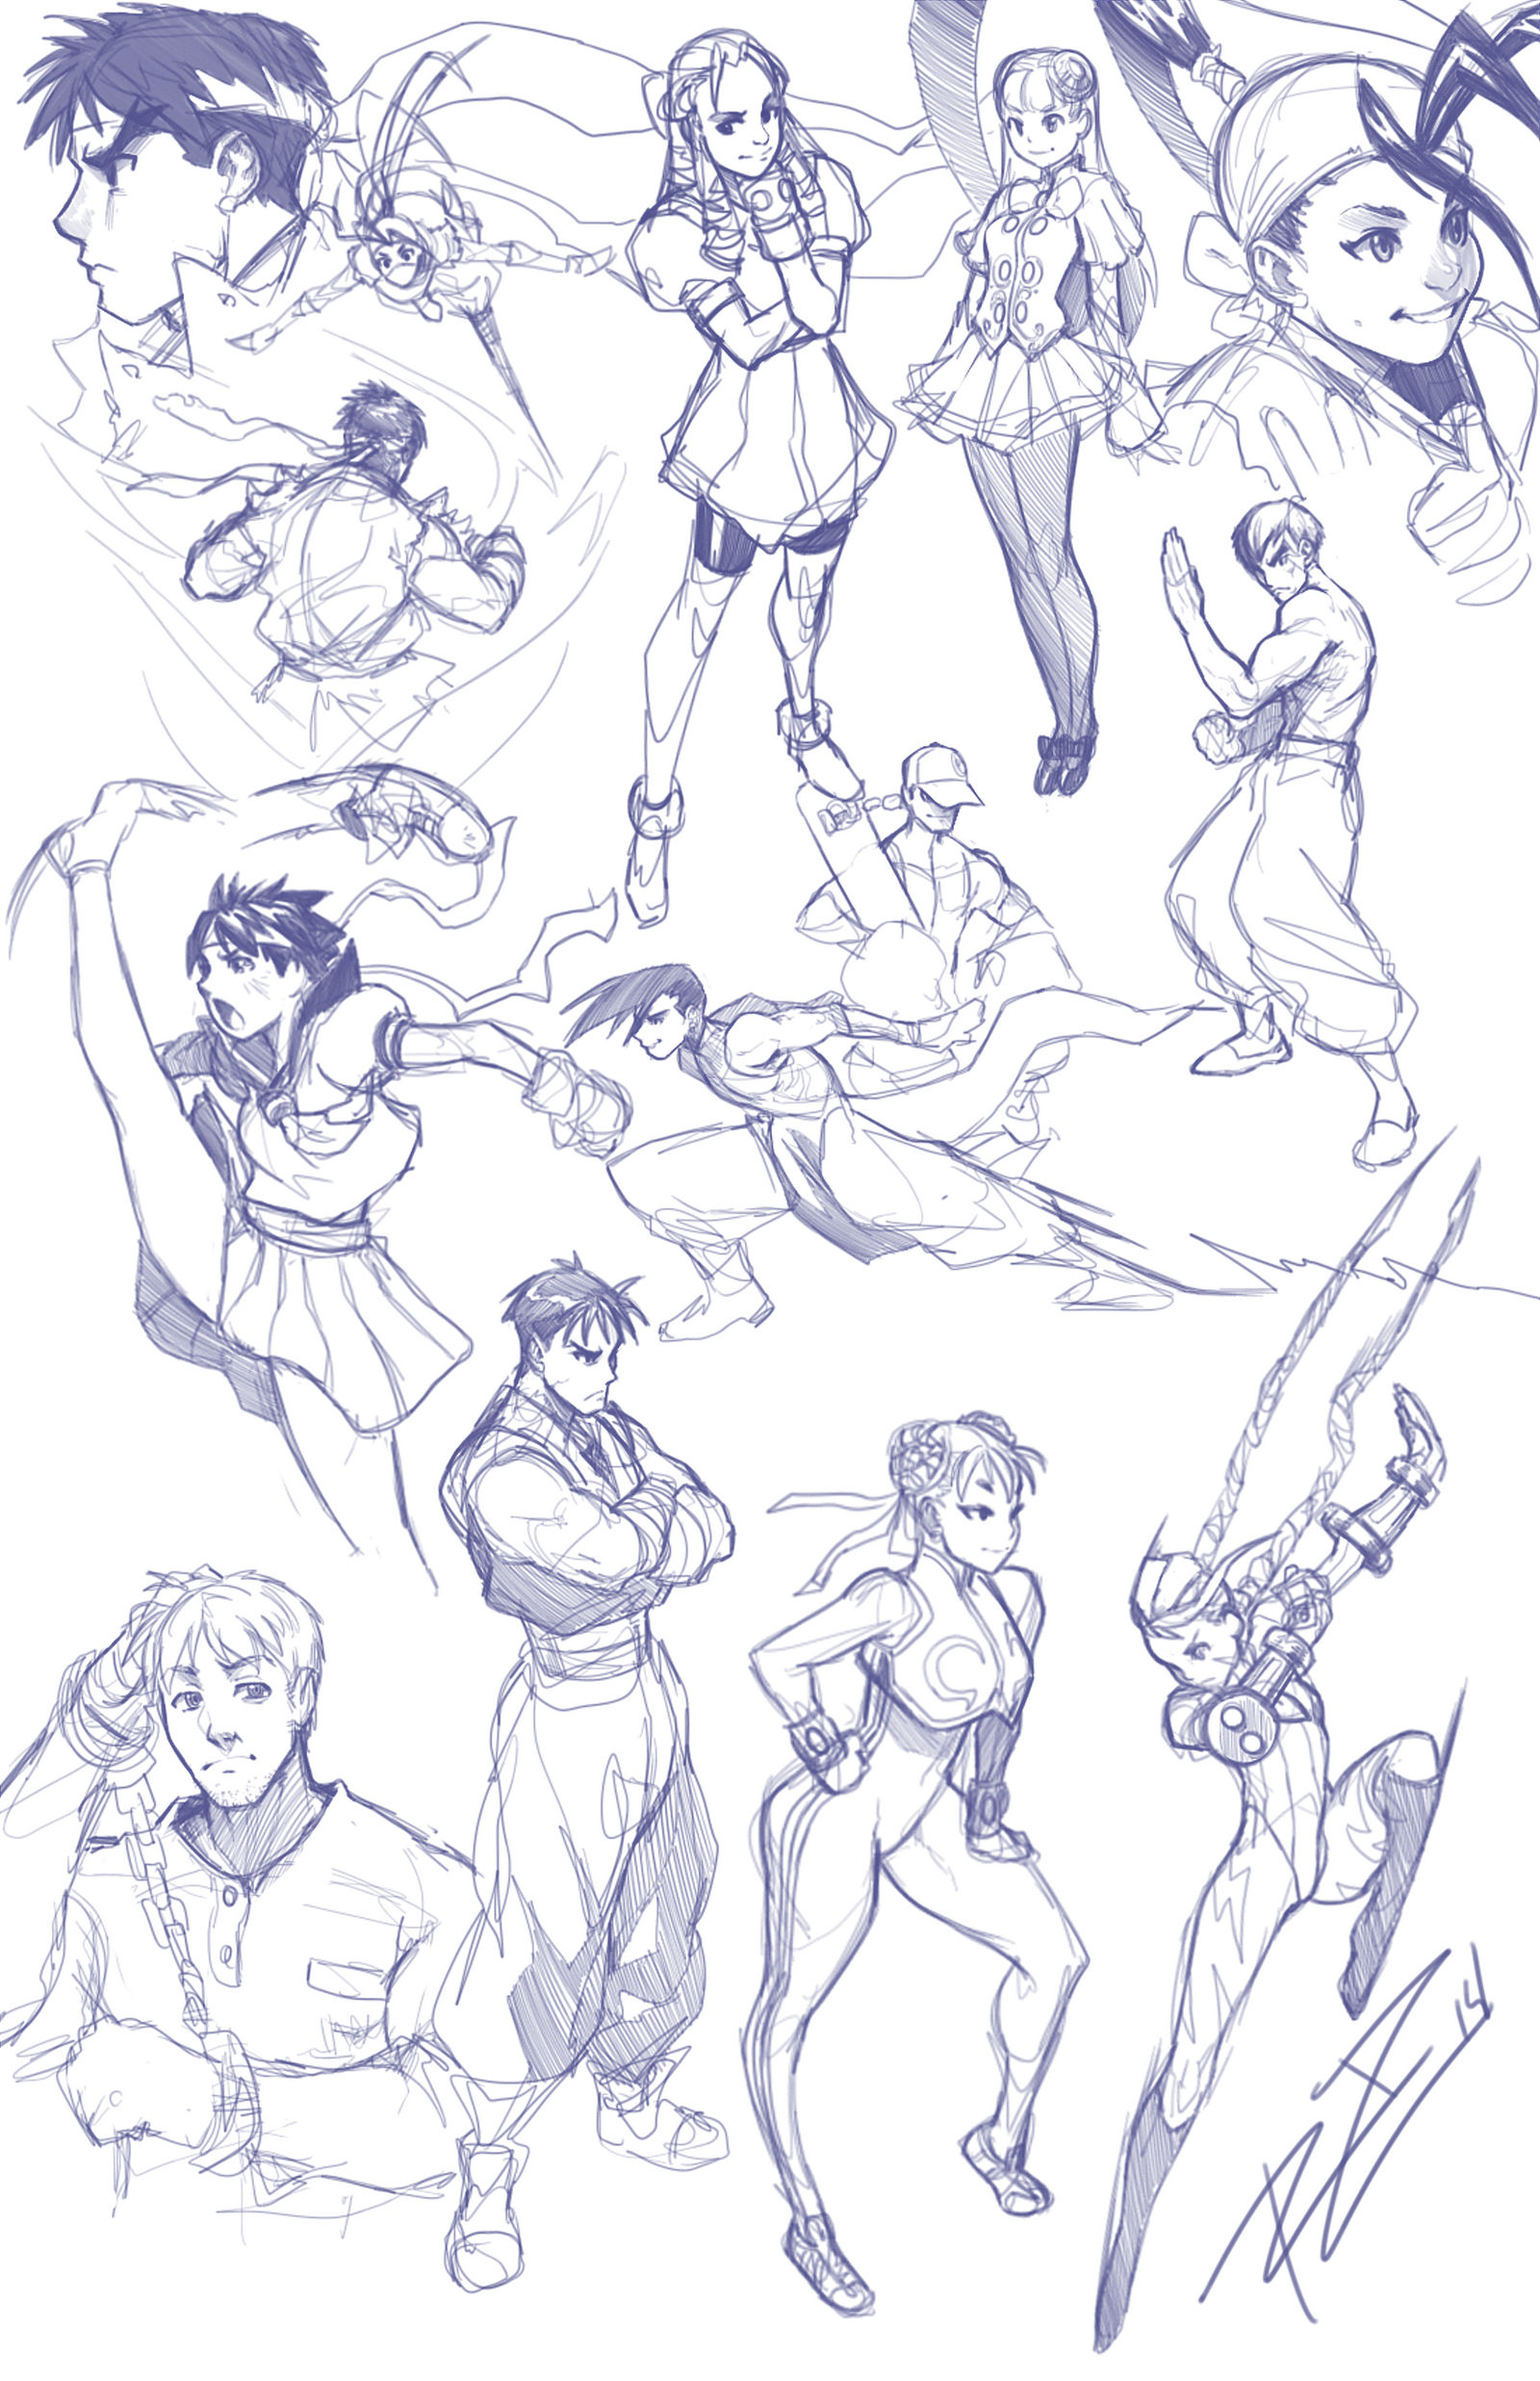 Street Fighter Medley 14-1-16 by Robaato